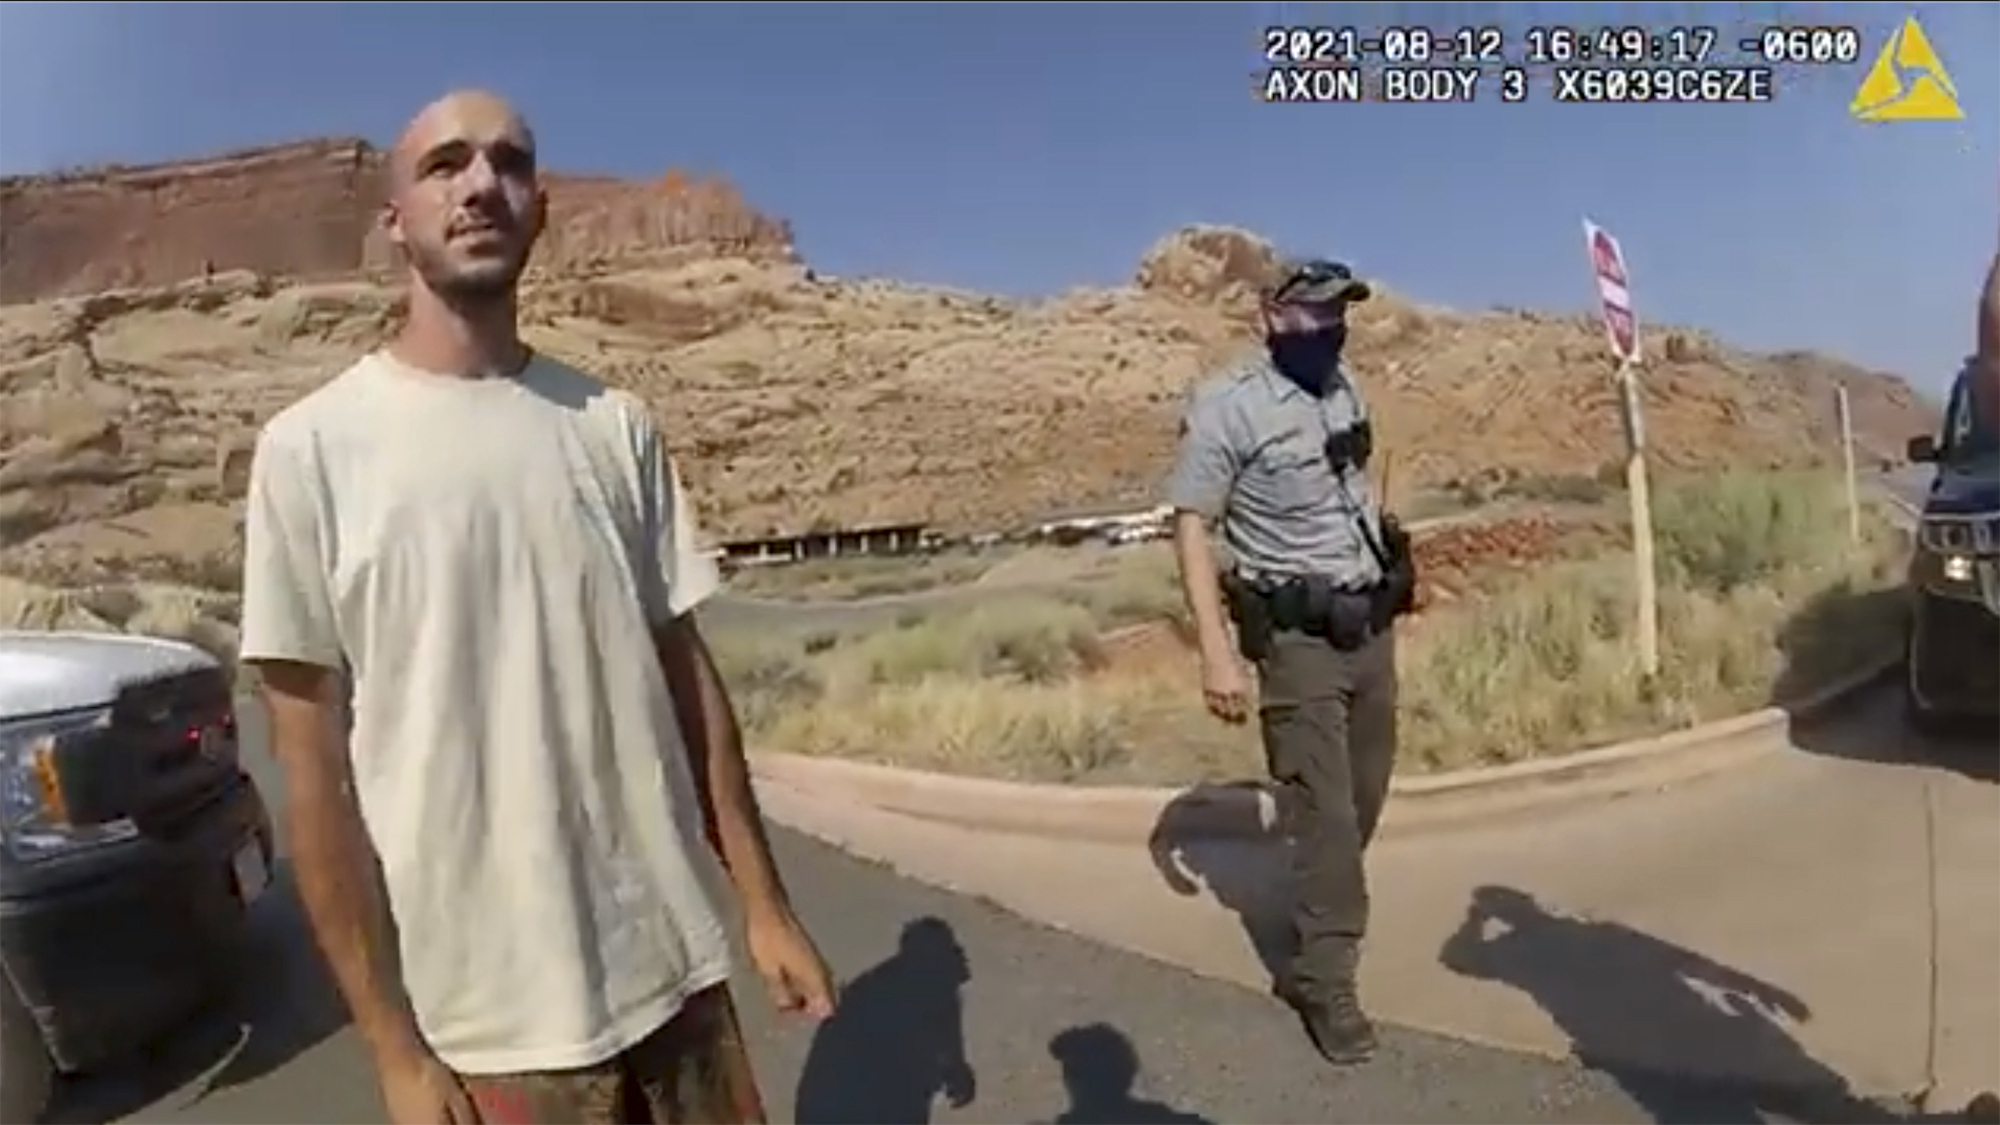 """This police camera video provided by the Moab Police Department shows Brian Laundrie talking to a police officer after police pulled over the van he was traveling in with his girlfriend, Gabrielle """"Gabby"""" Petito, near the entrance to Arches National Park on Aug. 12, 2021. The couple was pulled over while they were having an emotional fight. (The Moab Police Department via Associated Press)"""